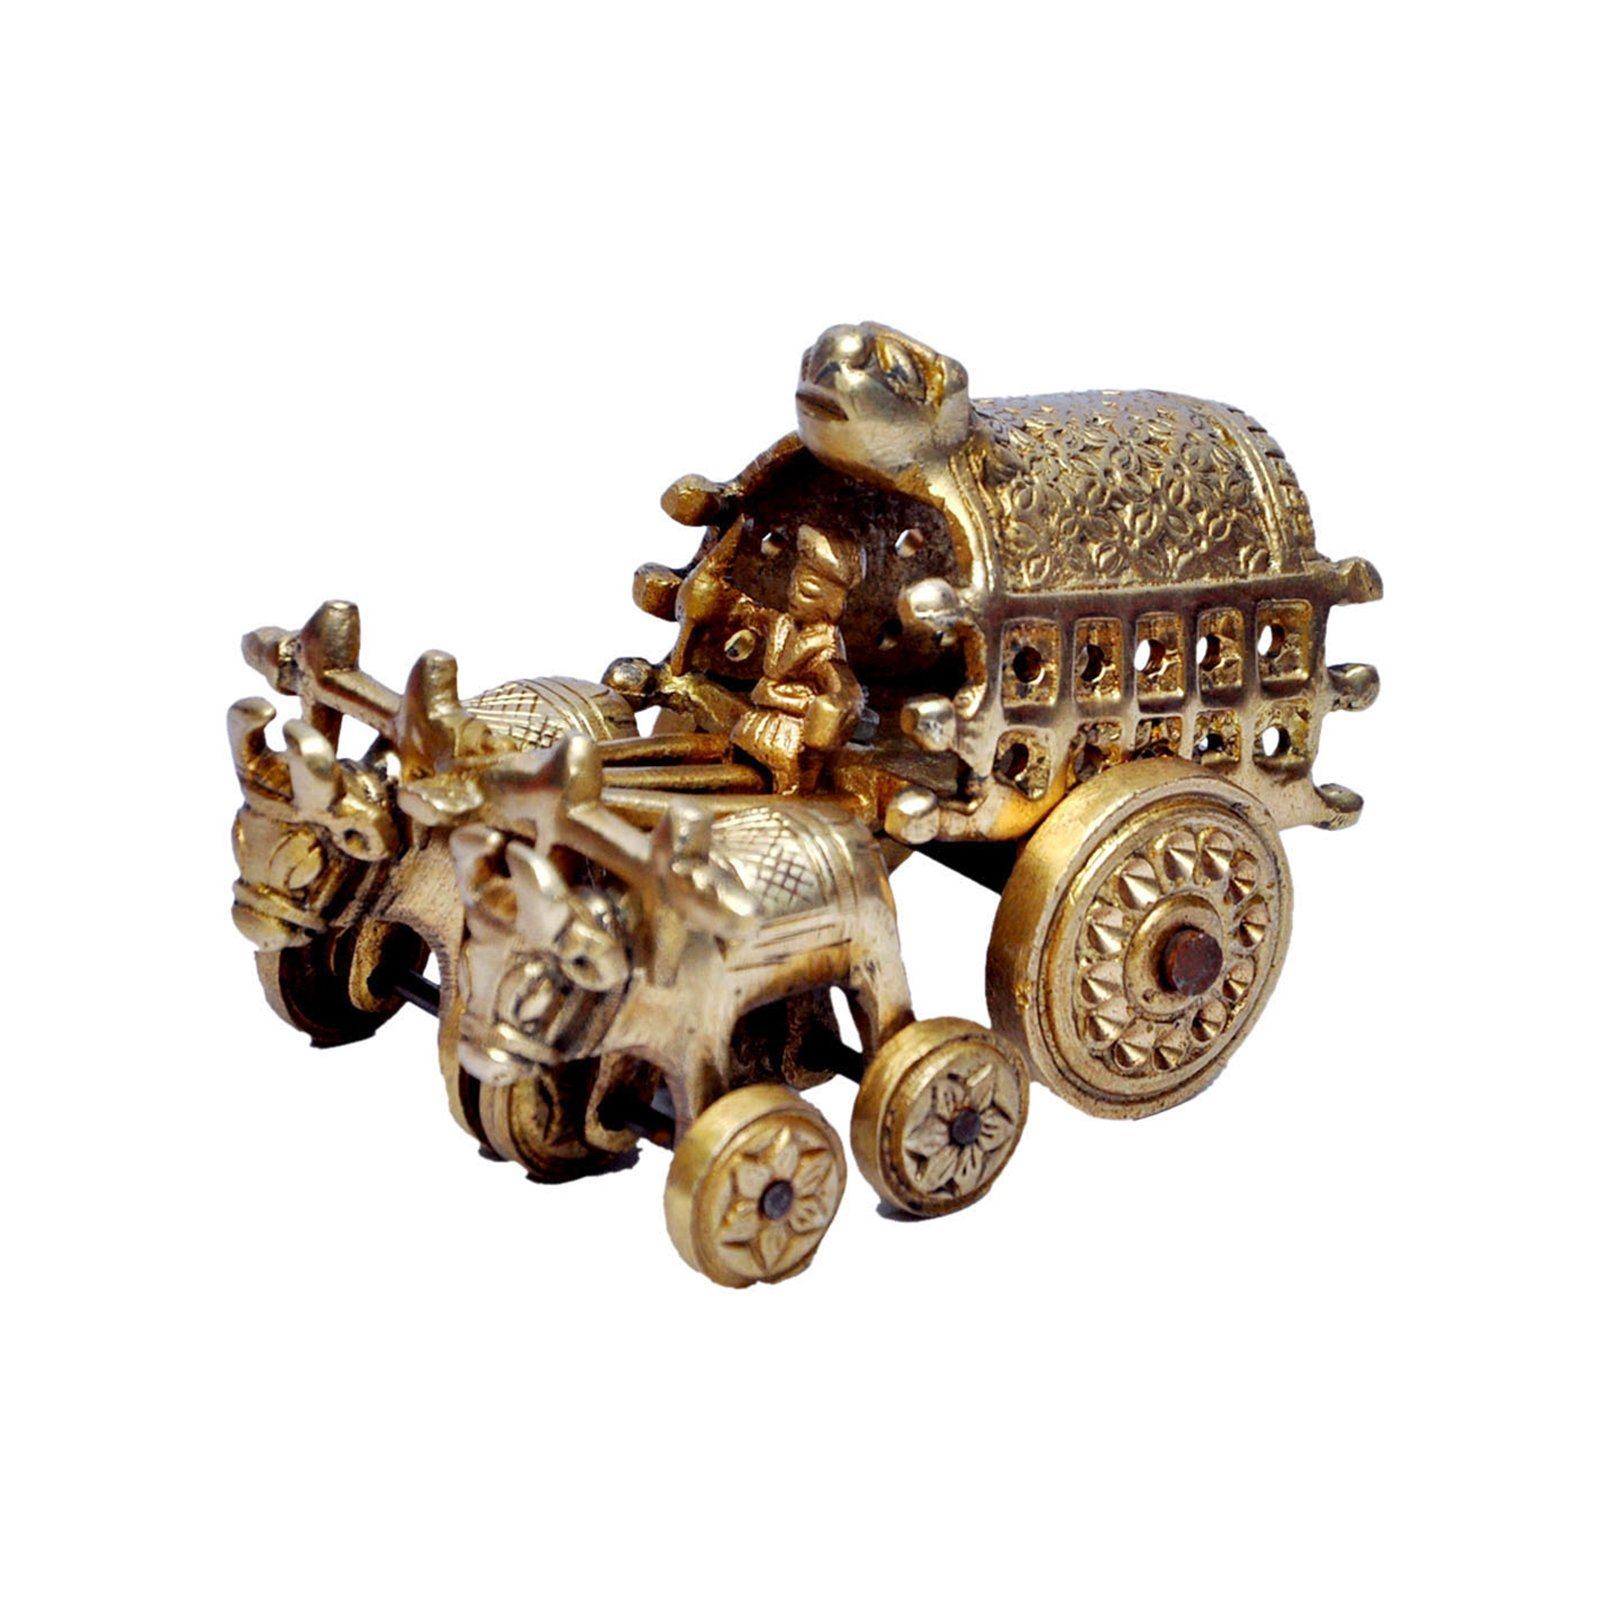 MP Crafts Brass Bull/Ox Cart Handicraft Idol Statue for Showpiece, Home Decor, Living Room, Festival, and Gift